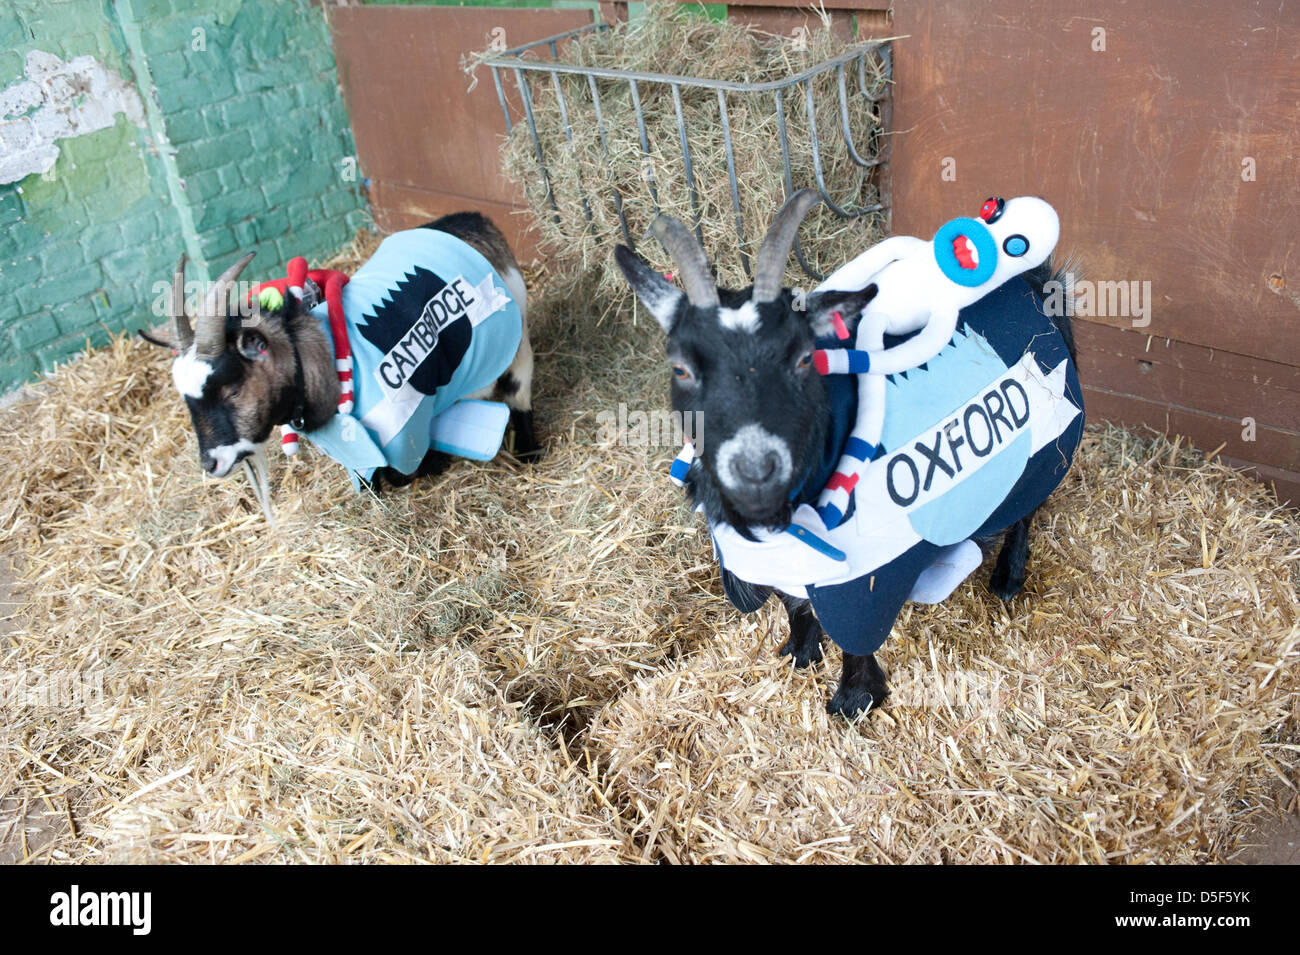 London, UK - 31 March 2013: The 5th Annual Oxford and Cambridge Goat Race takes place at Spitalfields City Farm. - Stock Image